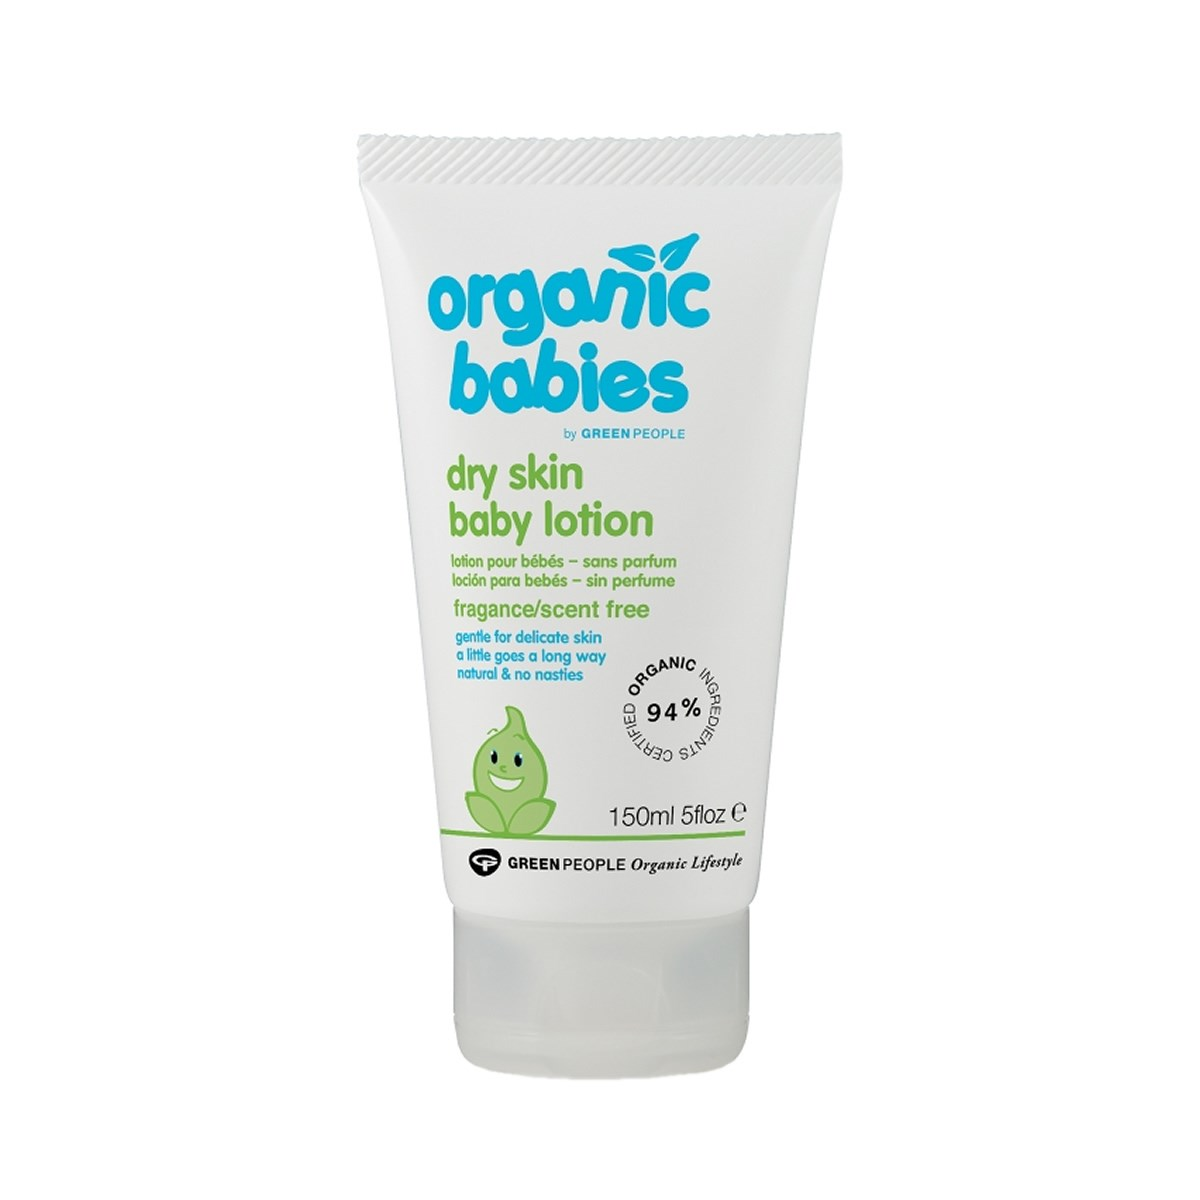 Green People Organic Babies Dry Skin Baby Lotion Scent Free